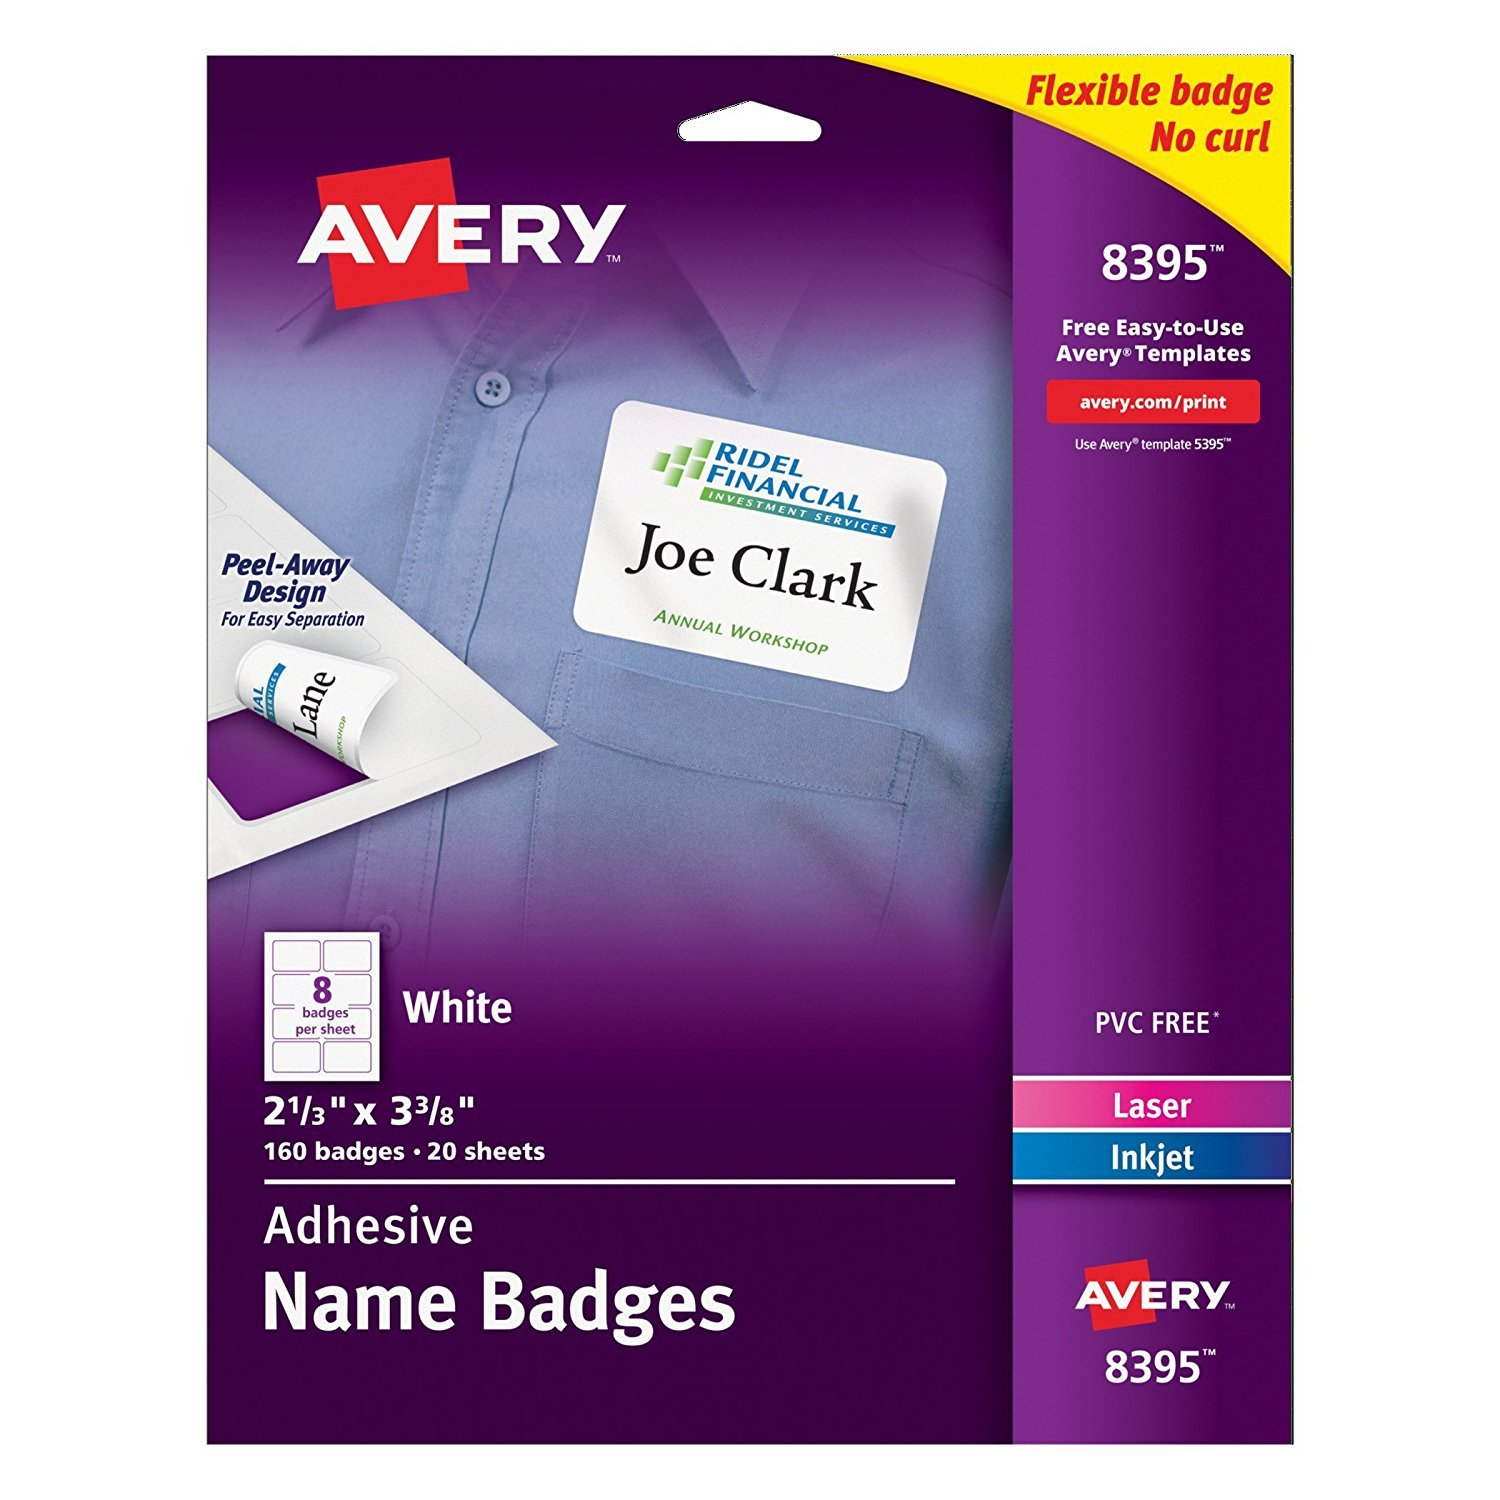 Avery Adhesive Flexible uEdHV Name Badges, 2.33 x 3.375 inches, White, 160 Count (5 Pack)